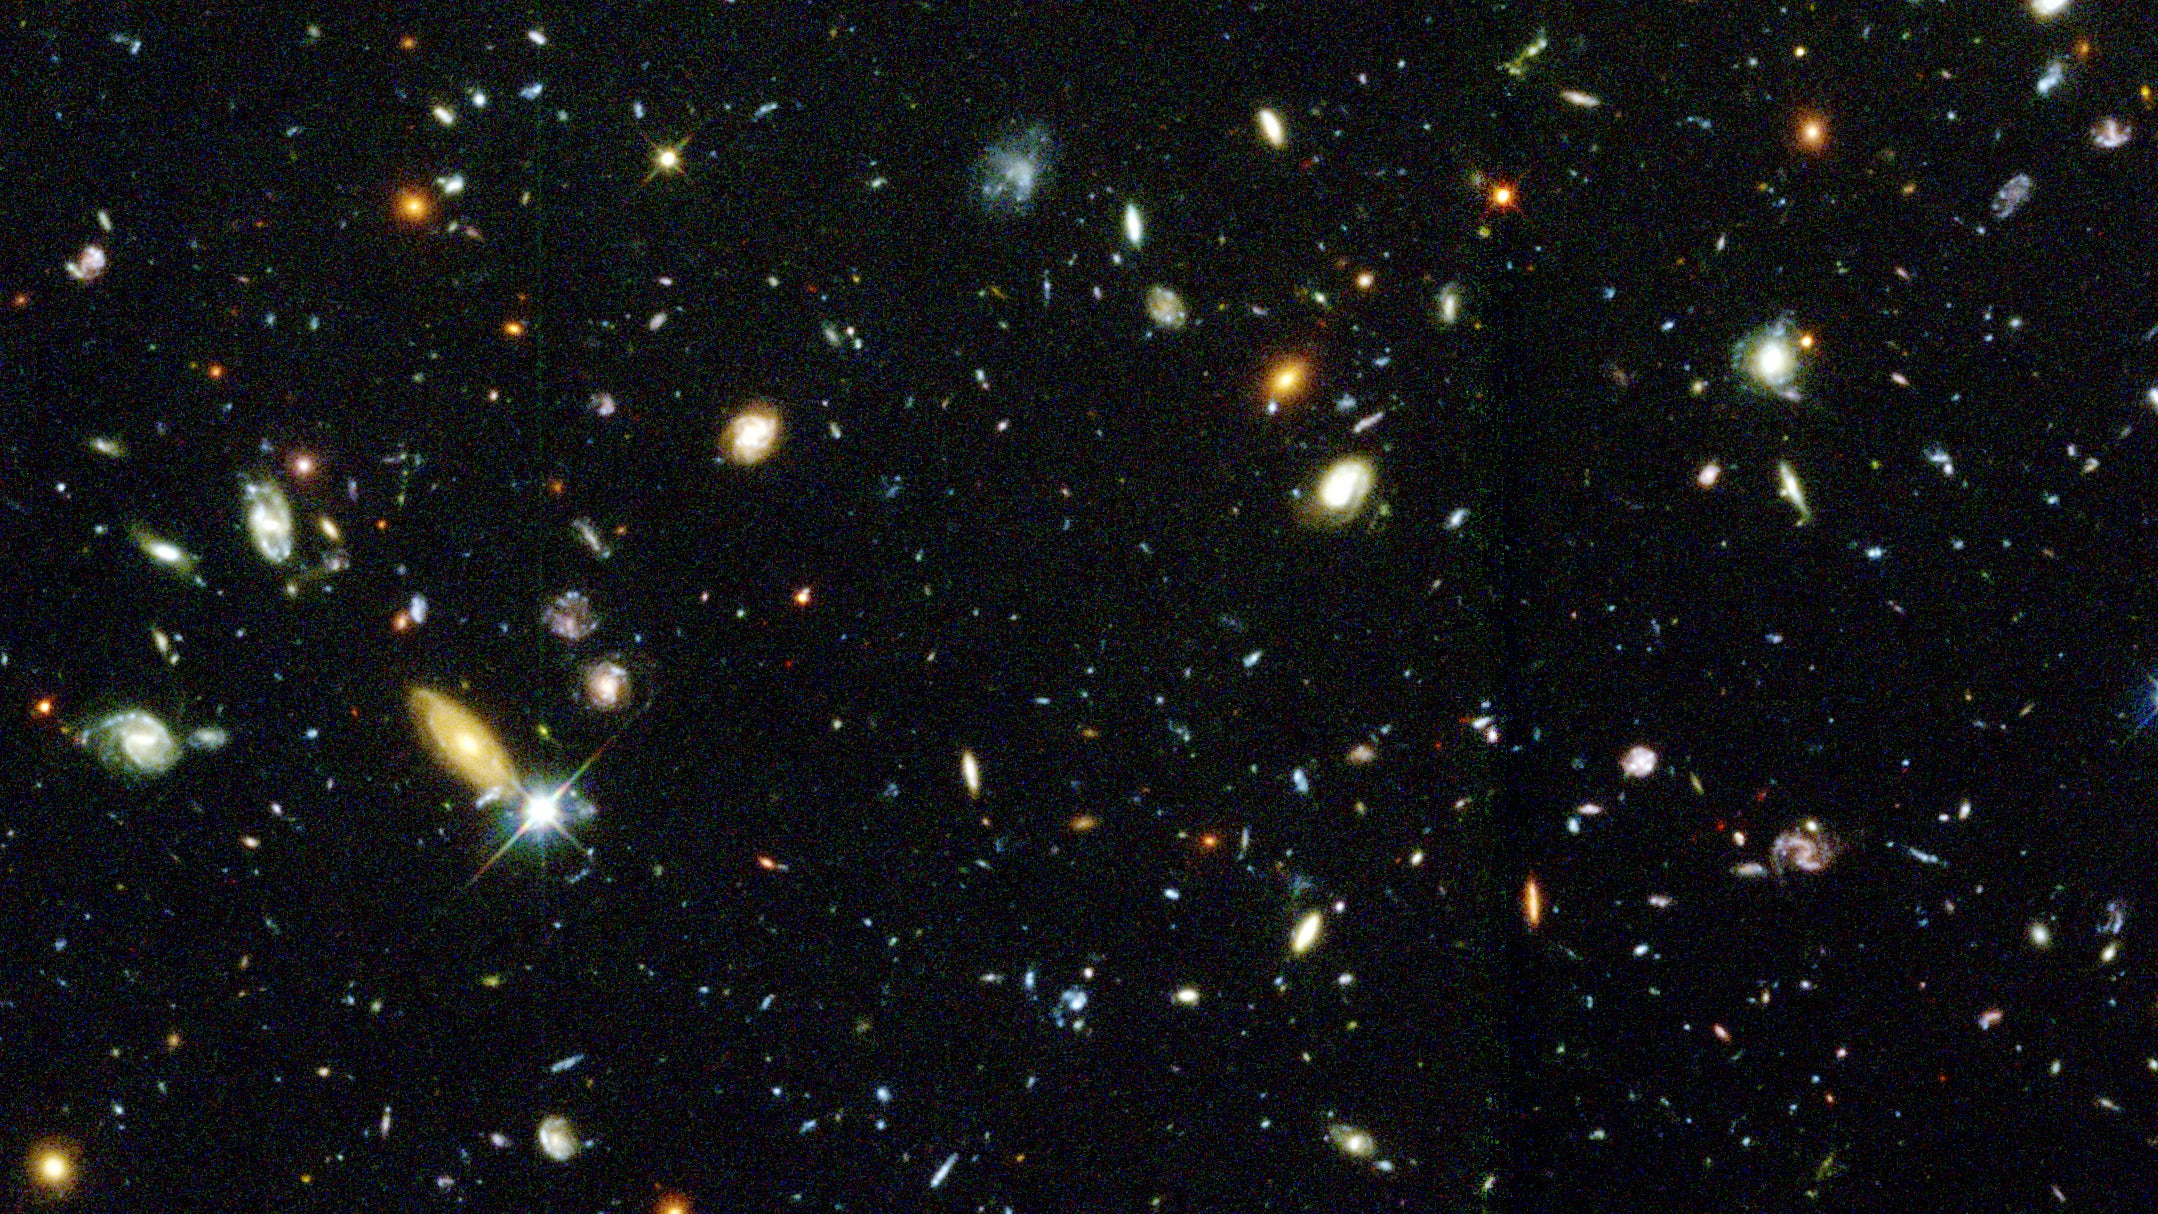 Can We Measure Our Own Galaxy Speeding Through Space?